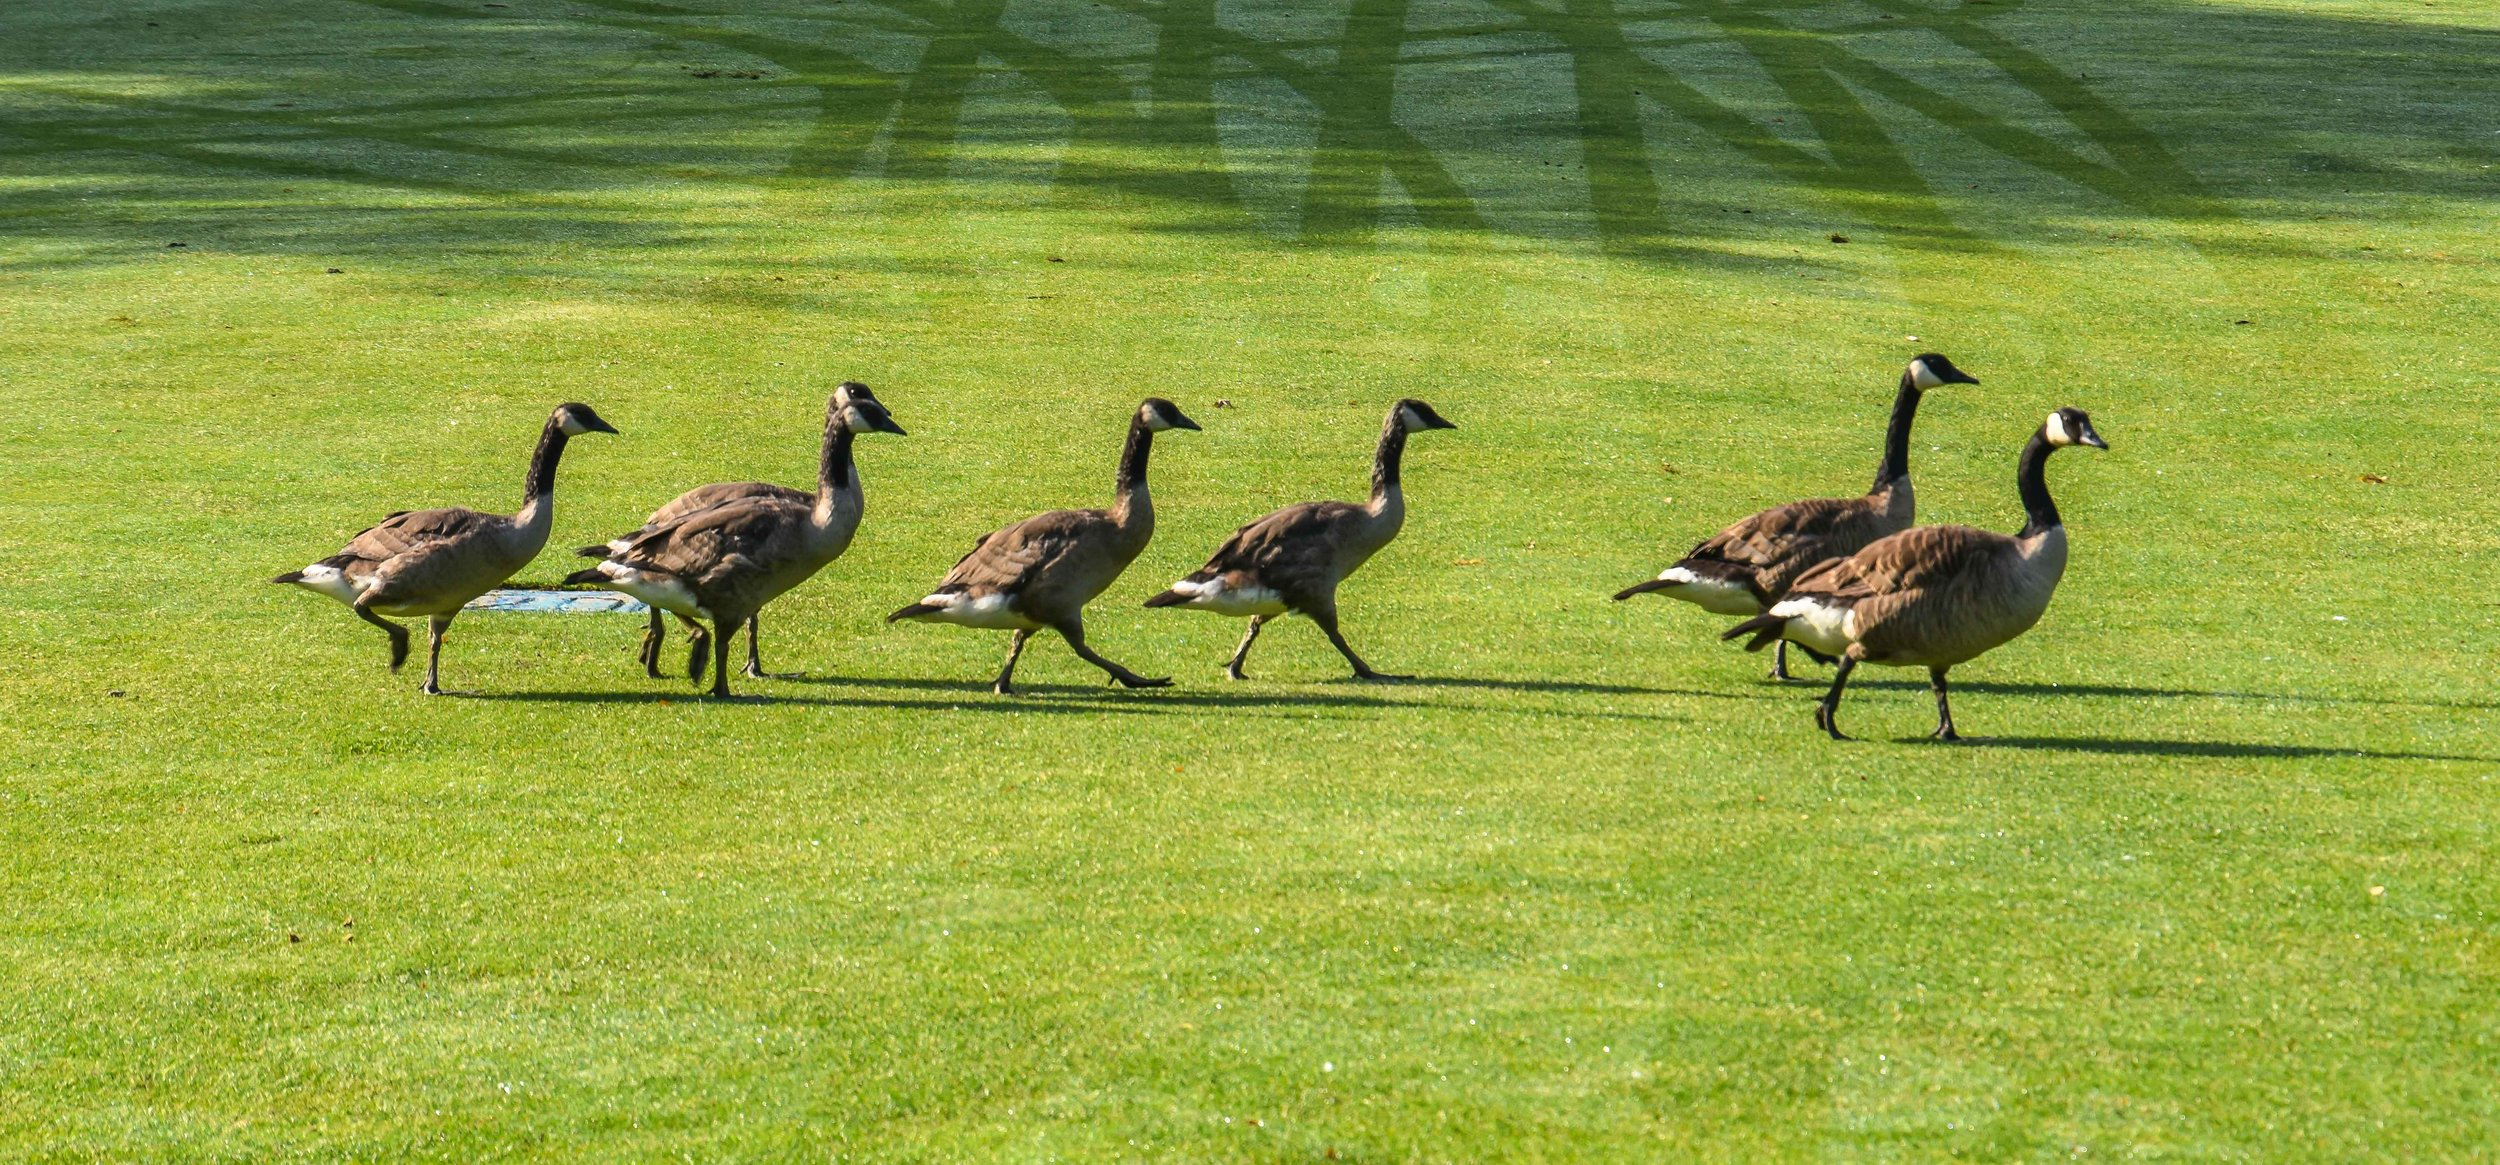 Usually, I hate Canadian Geese, but these fellas were oddly polite.